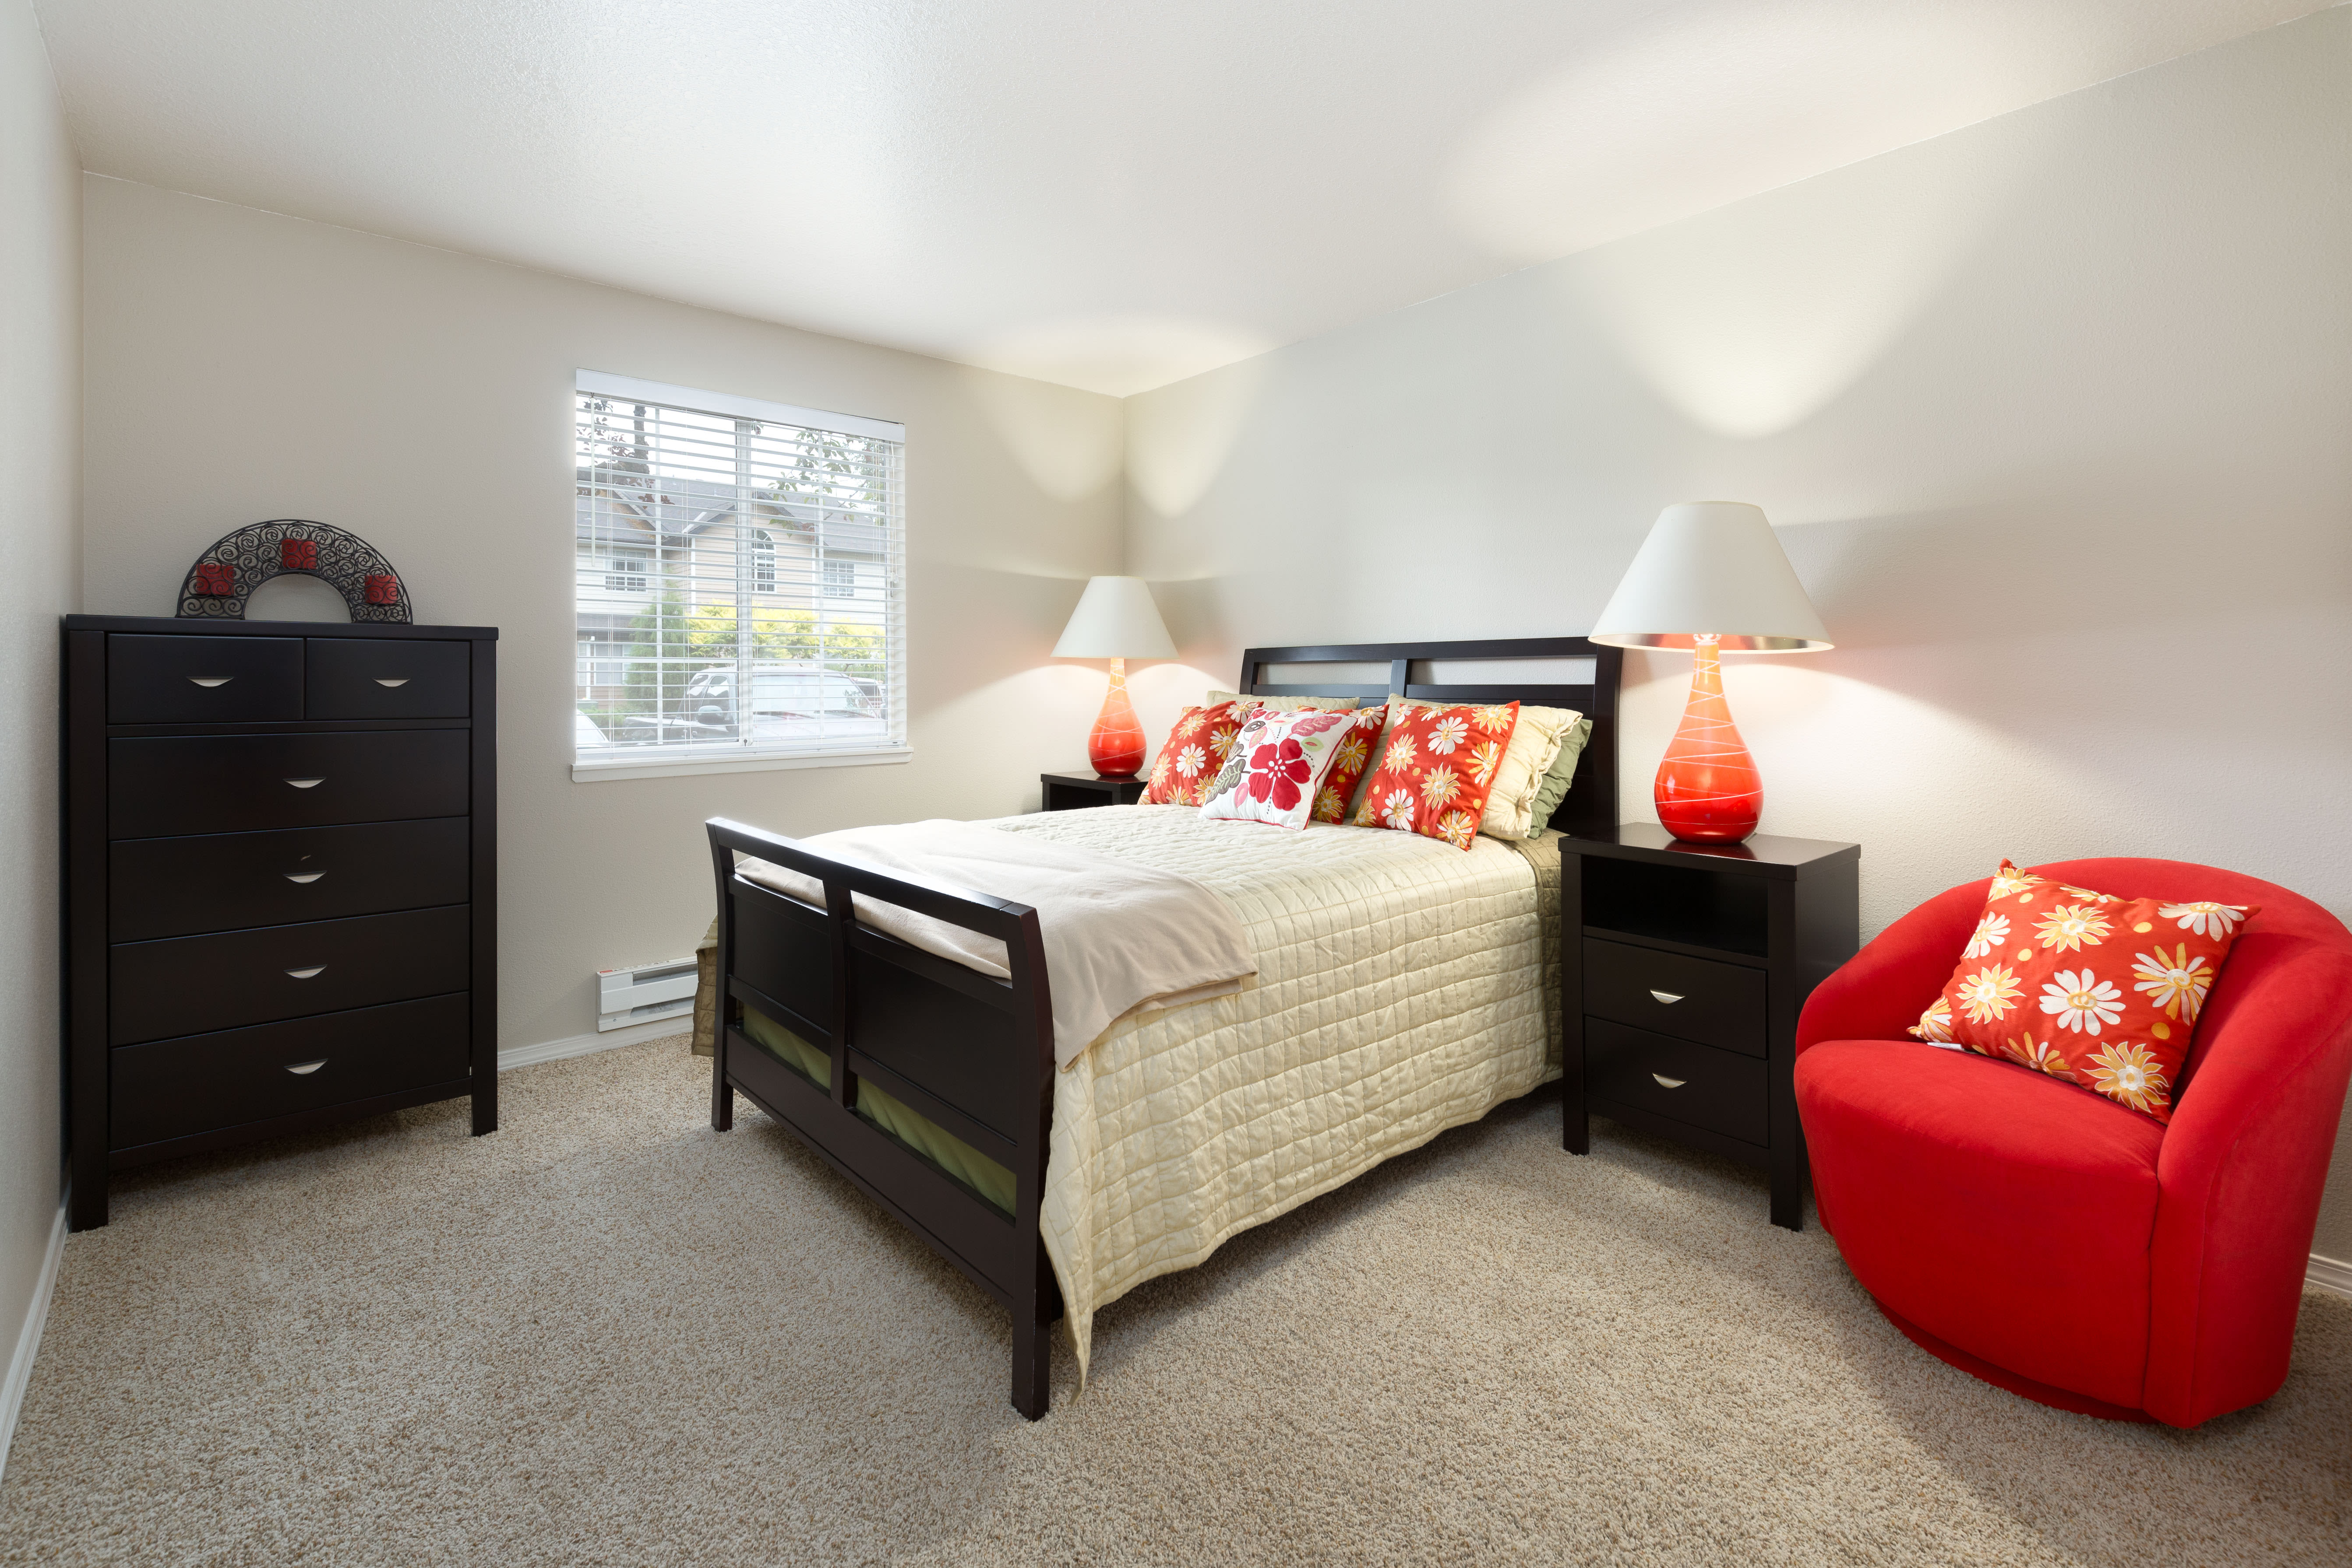 Master Bedroom With Closet at Walnut Grove Landing Apartments in Vancouver, WA